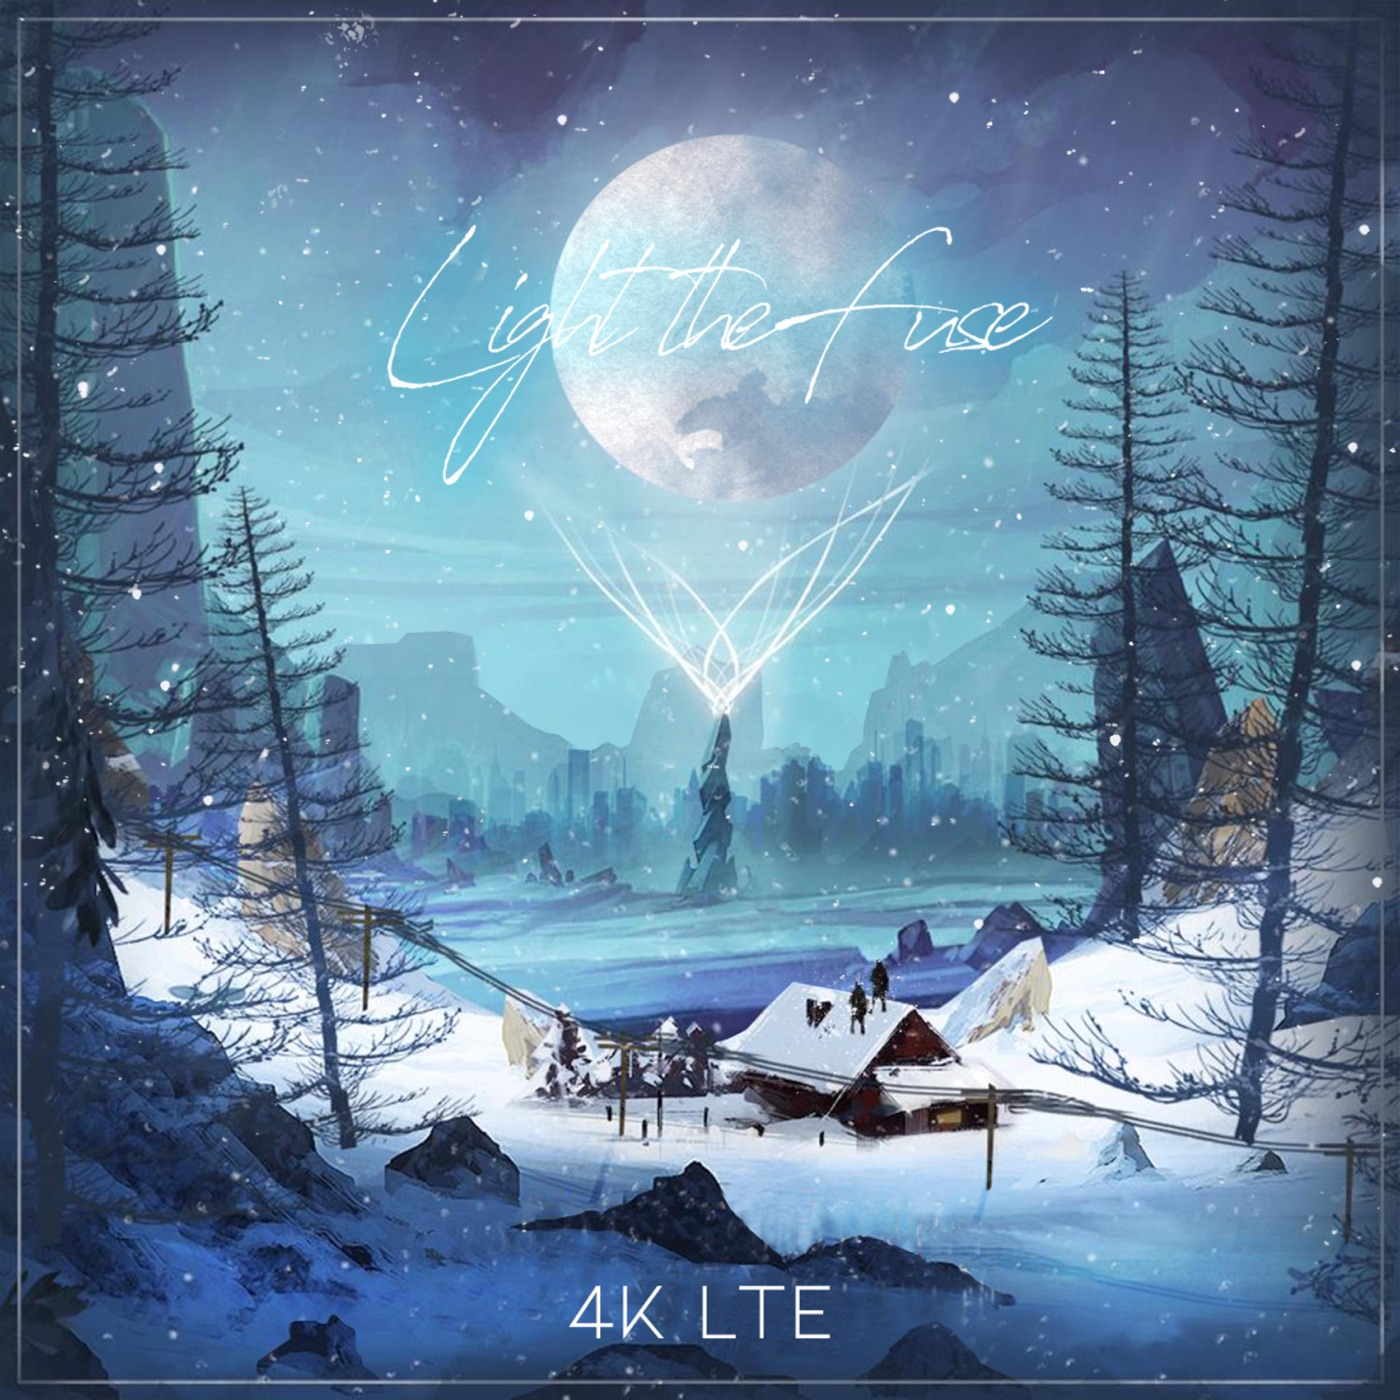 Light the Fuse - 4k LTE [single] (2019)